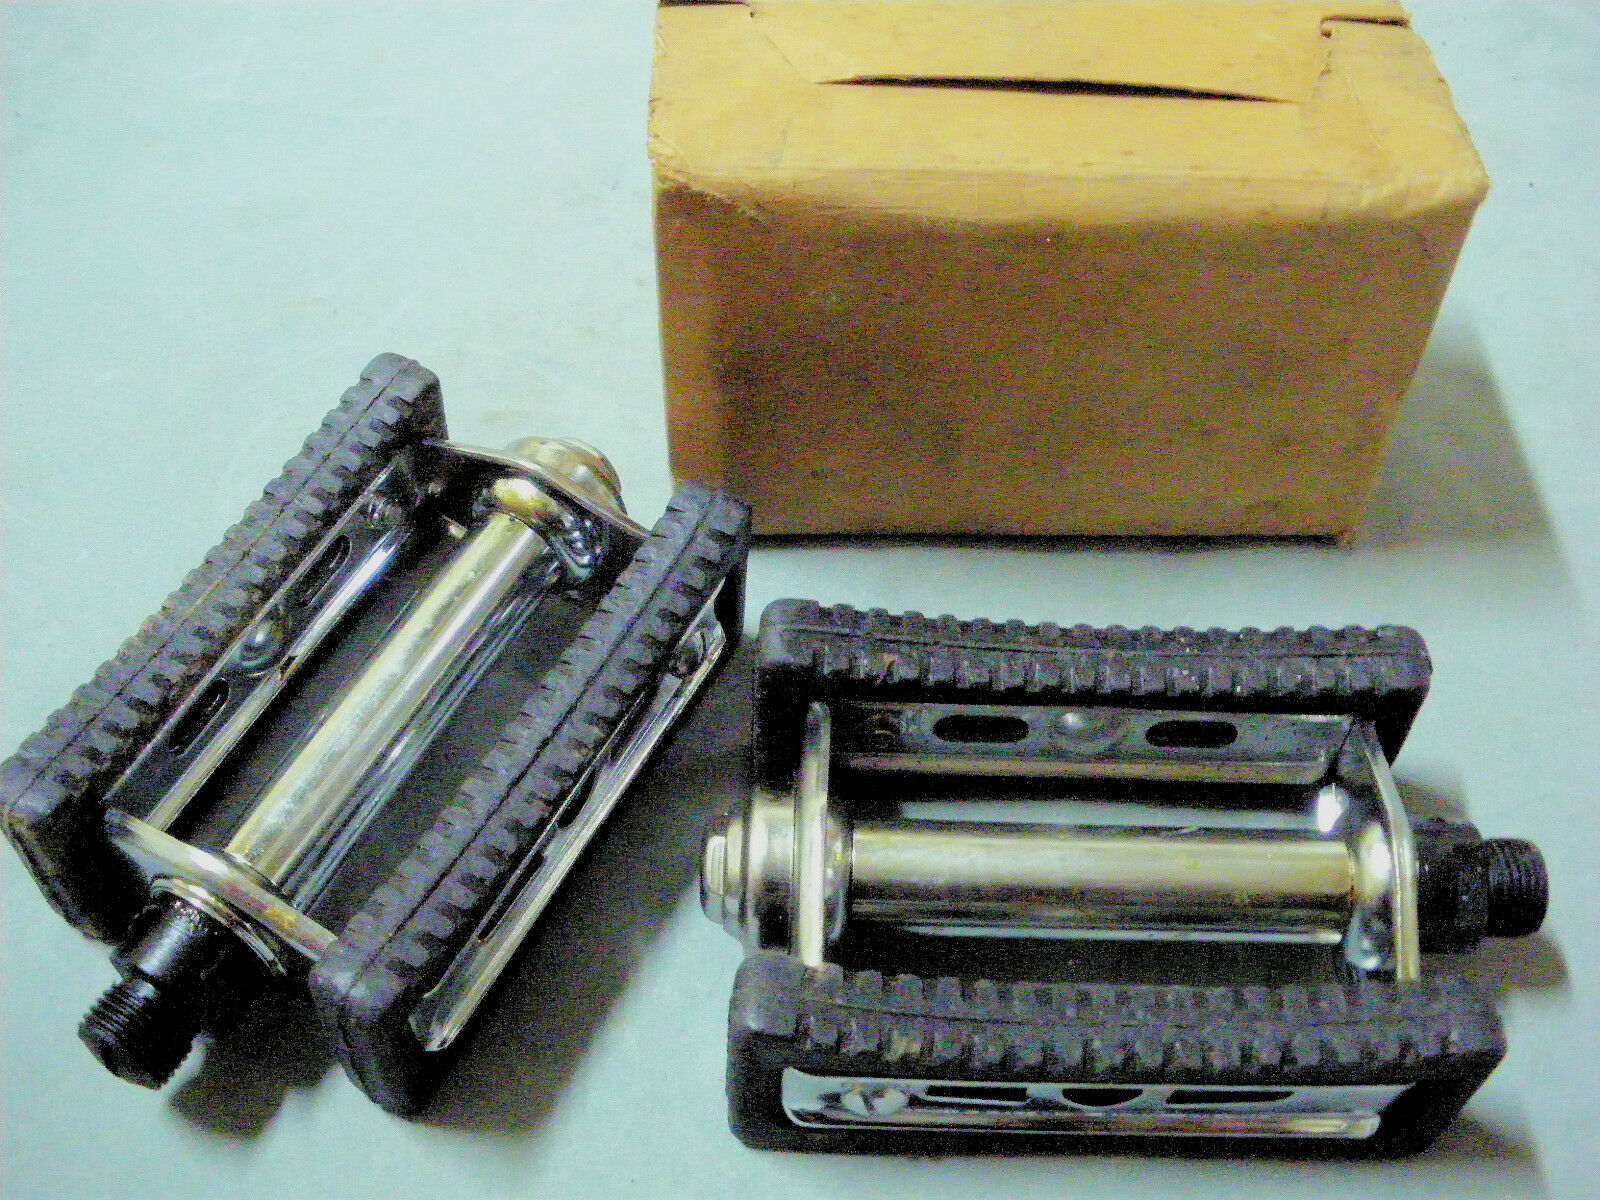 Vintage Raleigh or Phillips TYPE 202 Bicycle Pedals 9 16  Axle NOS 1960s GERMANY